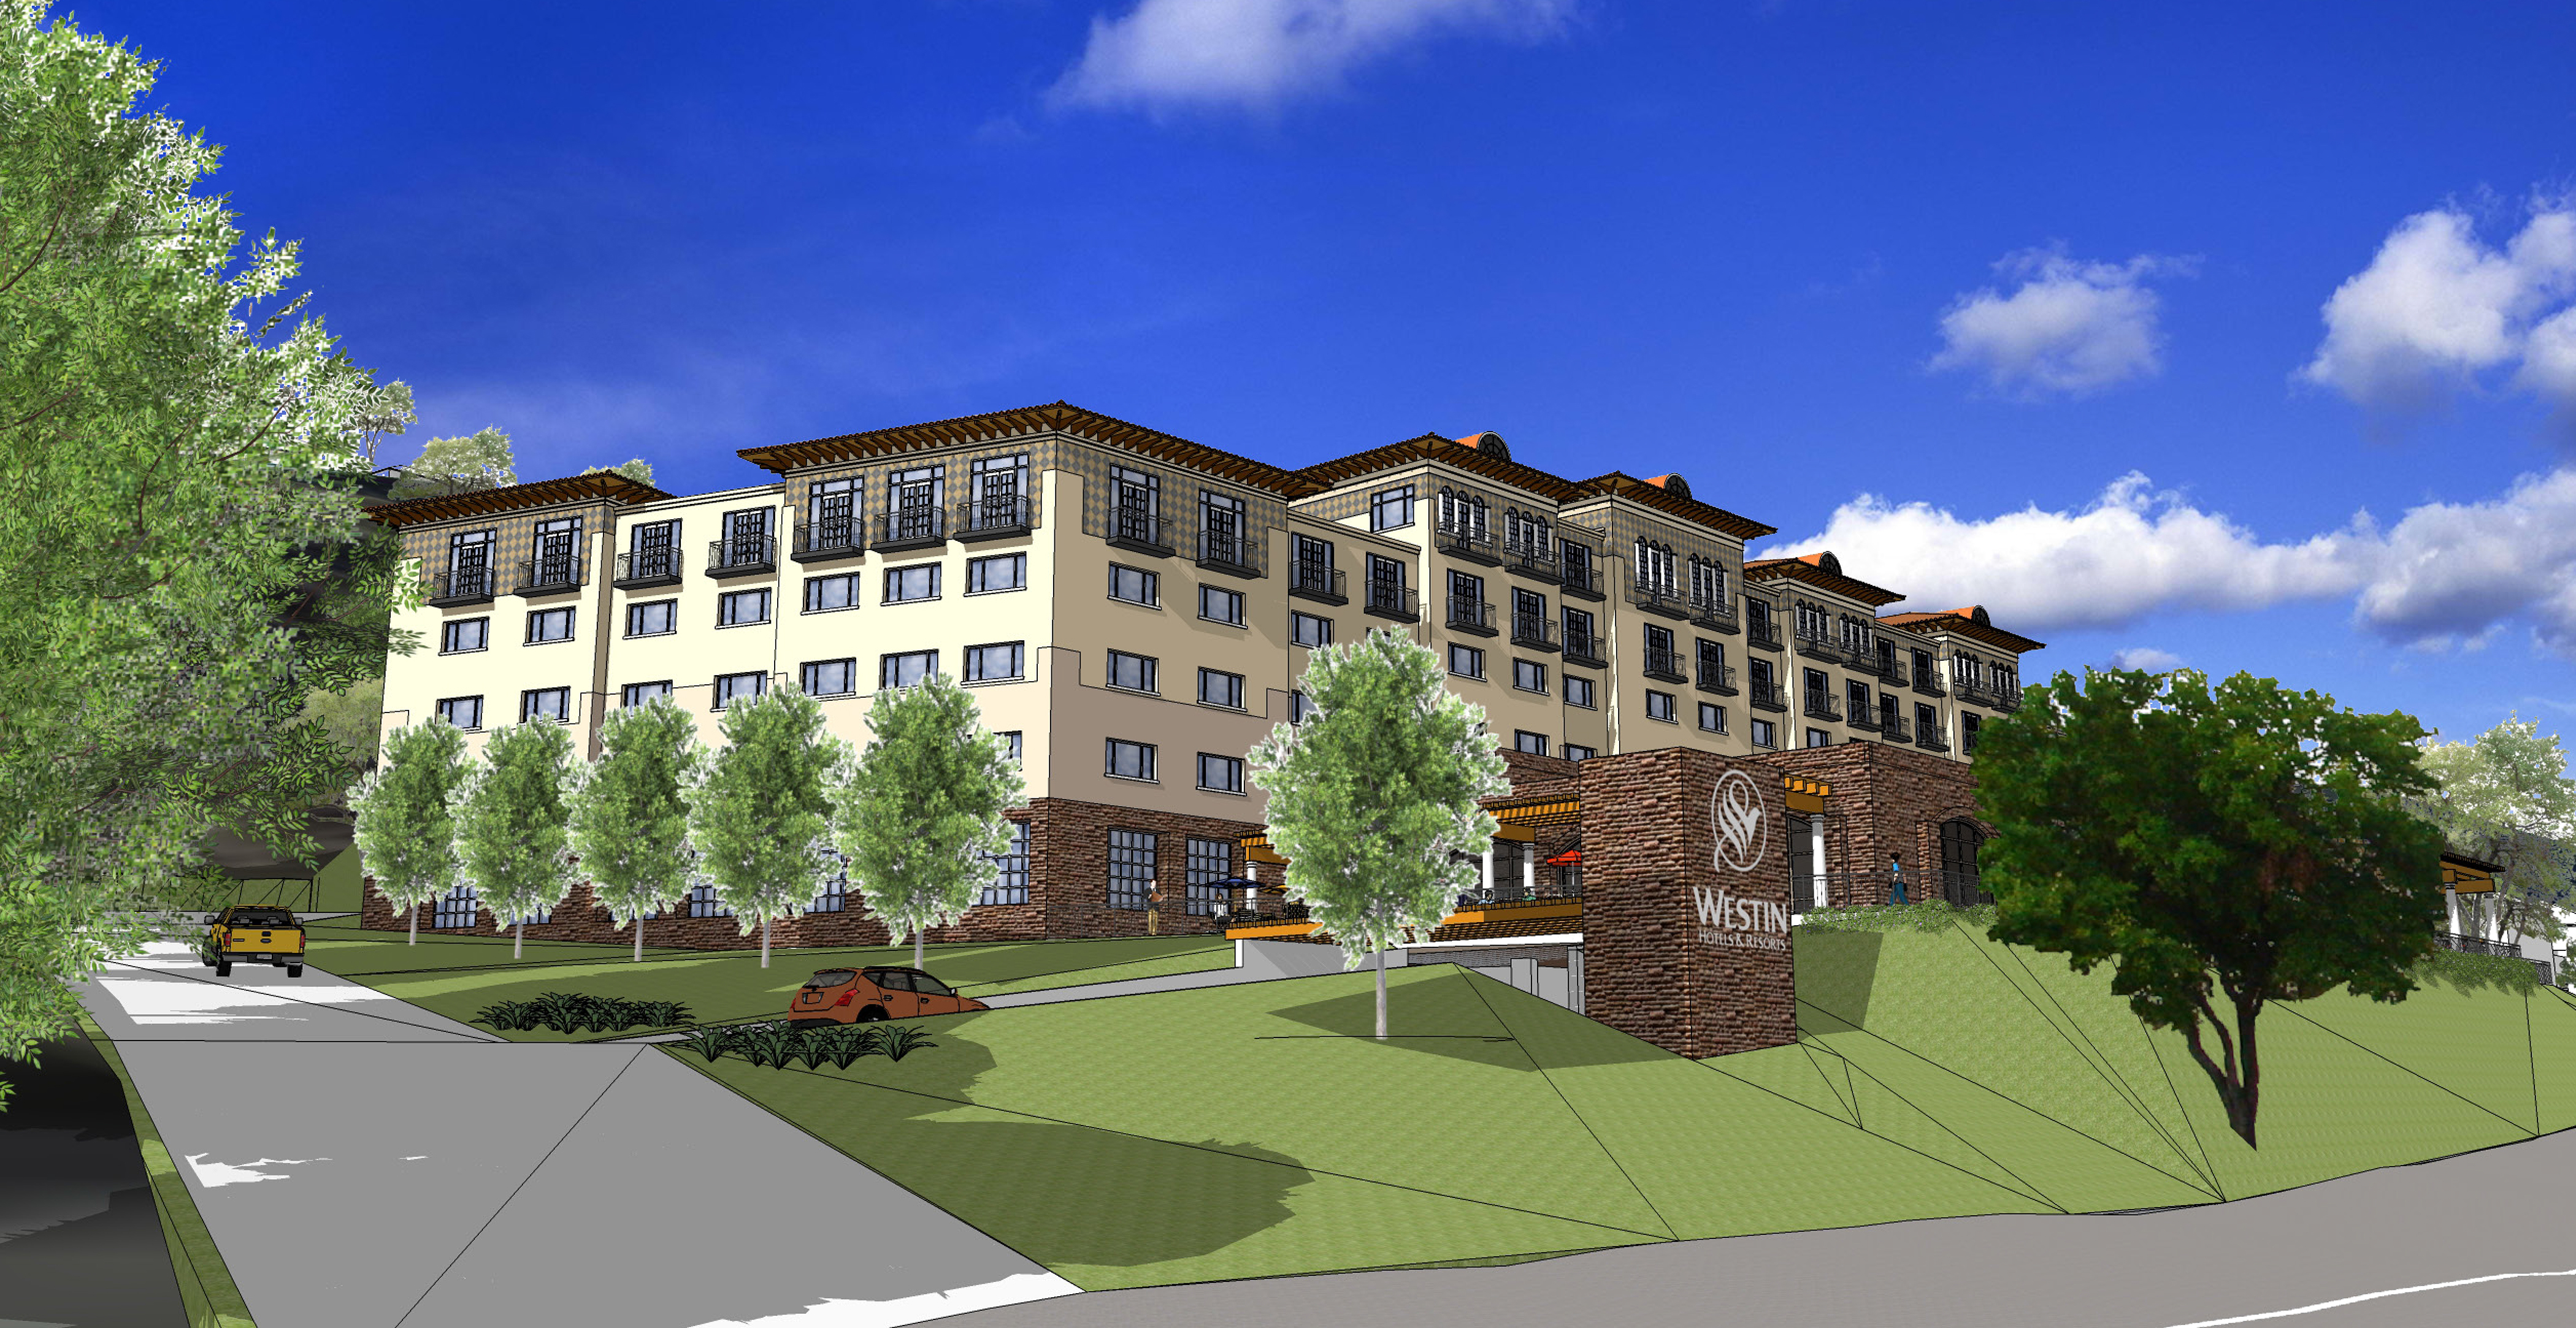 Usgrc Controls A Suitable Hotel Site In Calabasas California And Intends To Construct Operate Courtyard By Marriott Upon Such